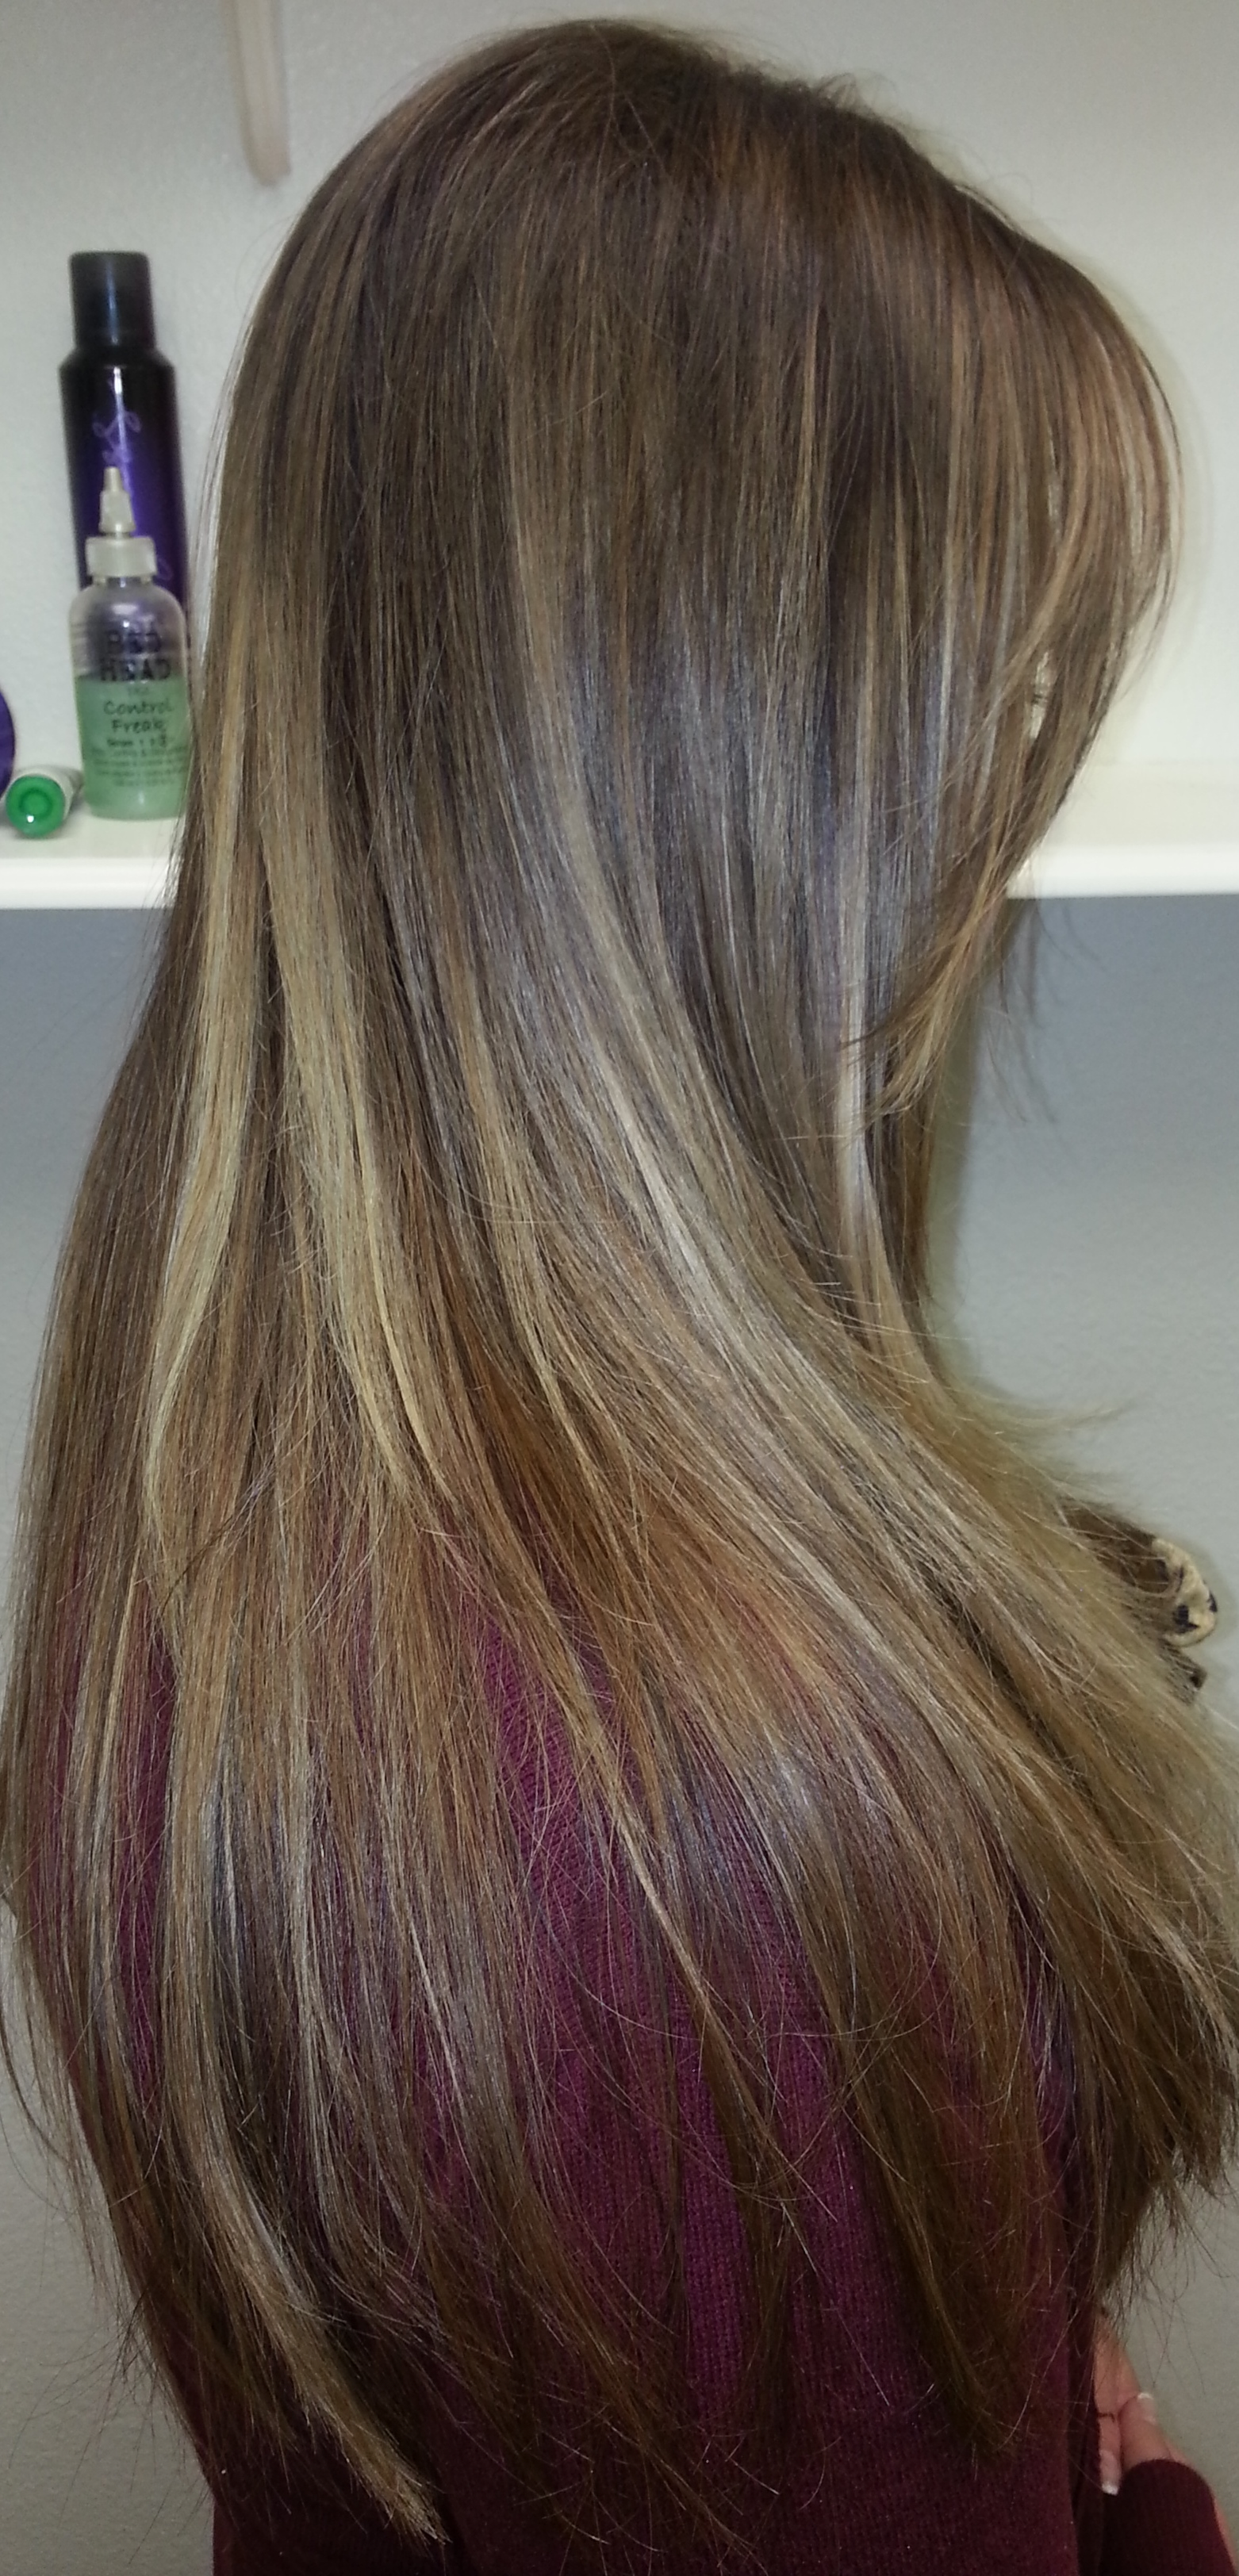 042f10154aa ombre Archives - Femme Chic Beauty